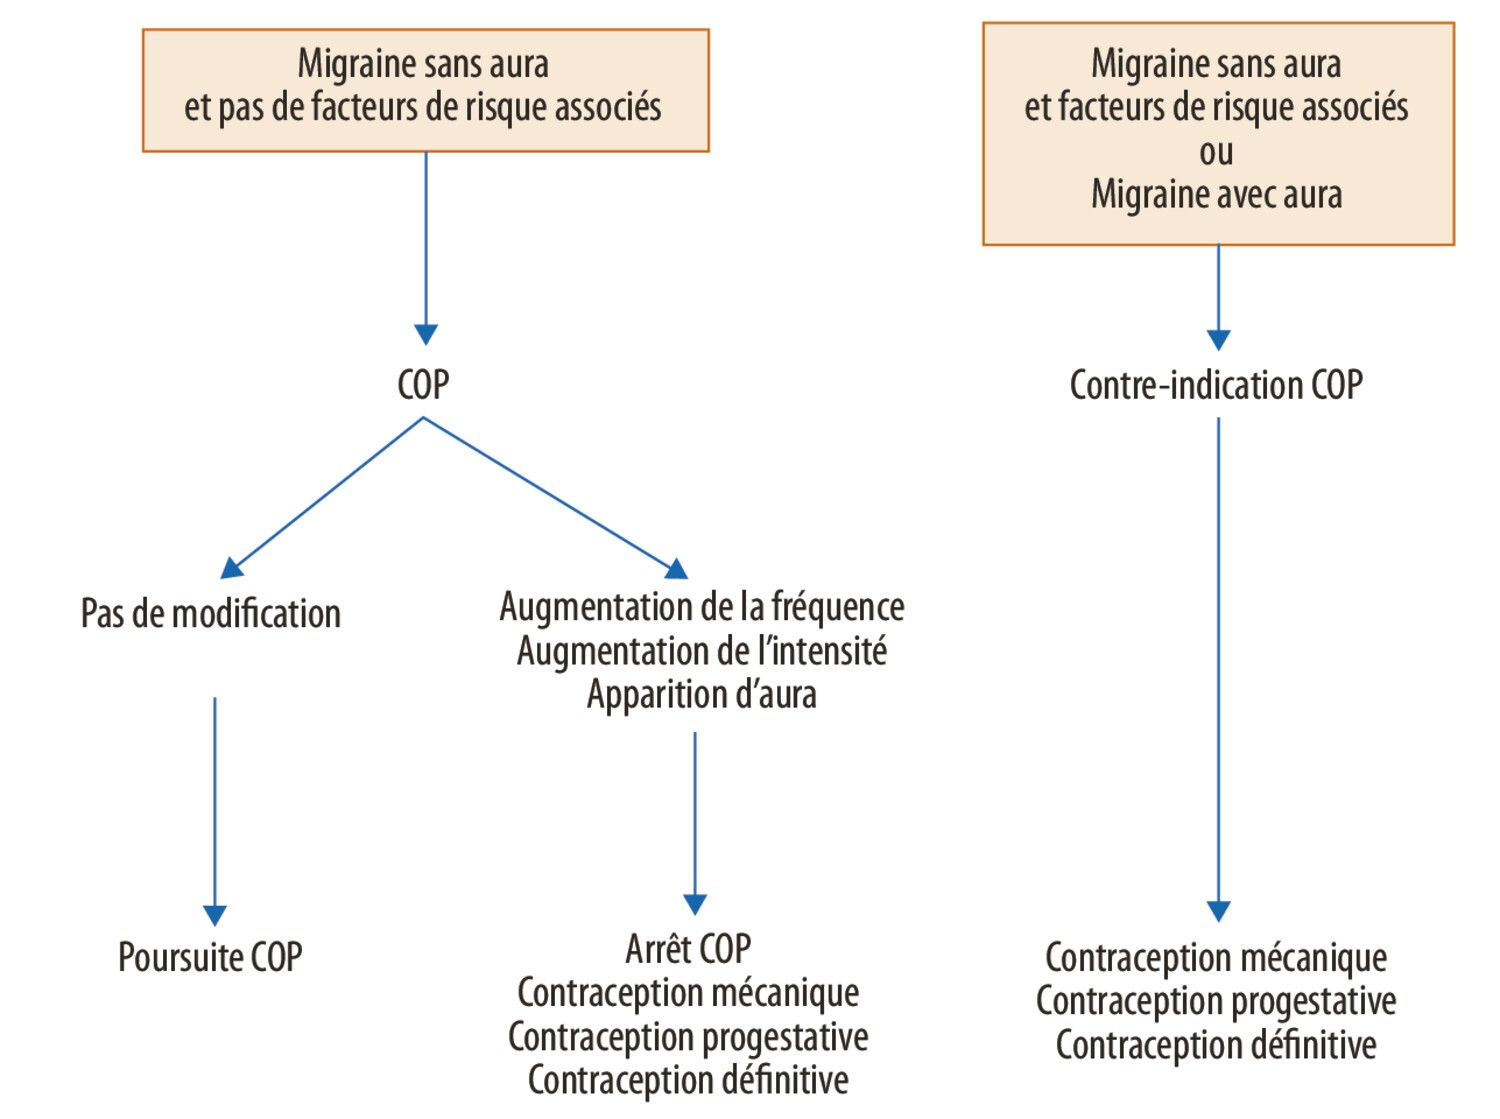 Contraception chez la patiente migraineuse - Figure